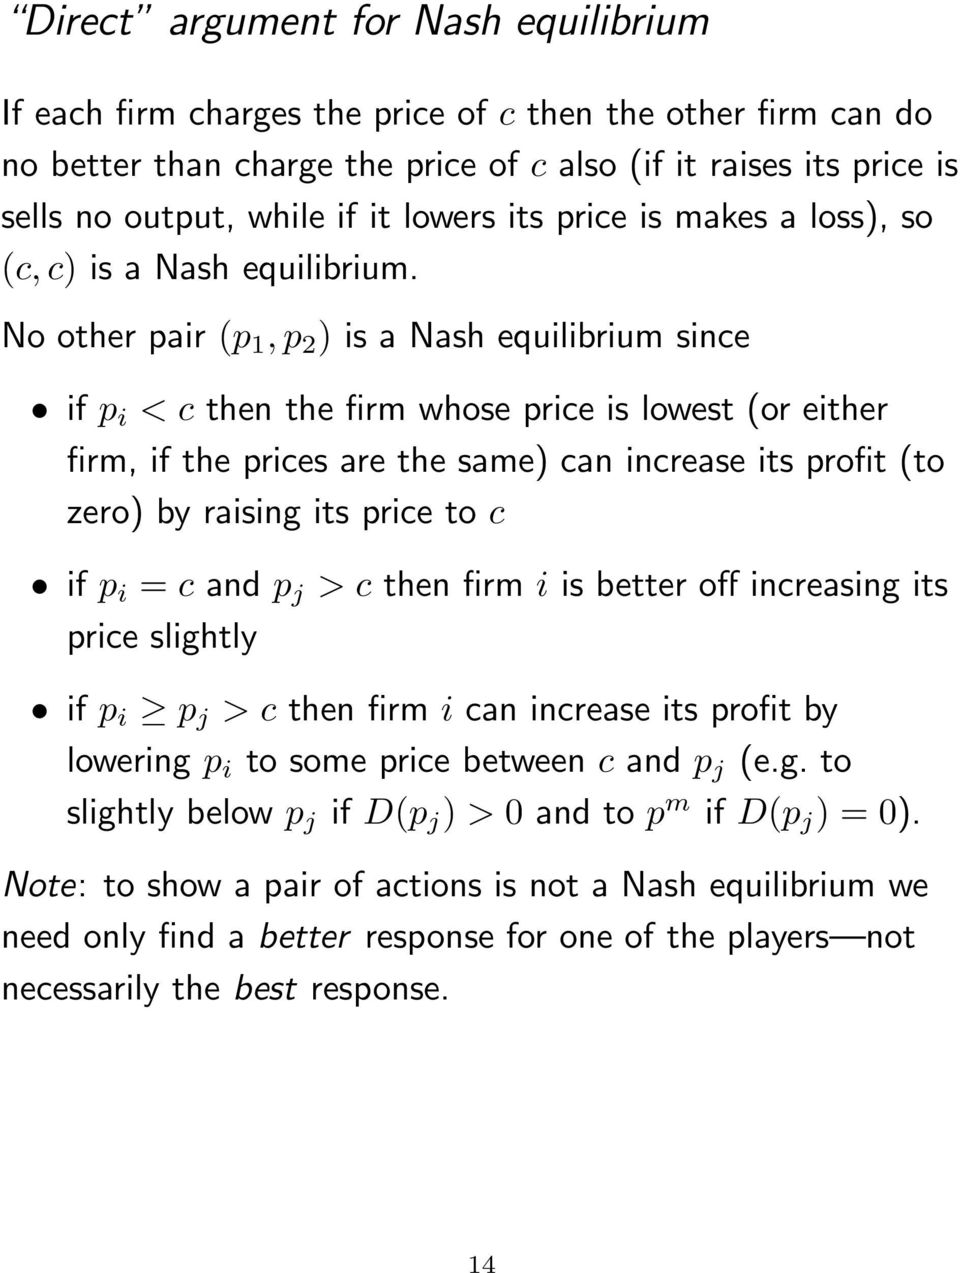 No other pair (p 1, p 2 ) is a Nash equilibrium since if p i < c then the firm whose price is lowest (or either firm, if the prices are the same) can increase its profit (to zero) by raising its